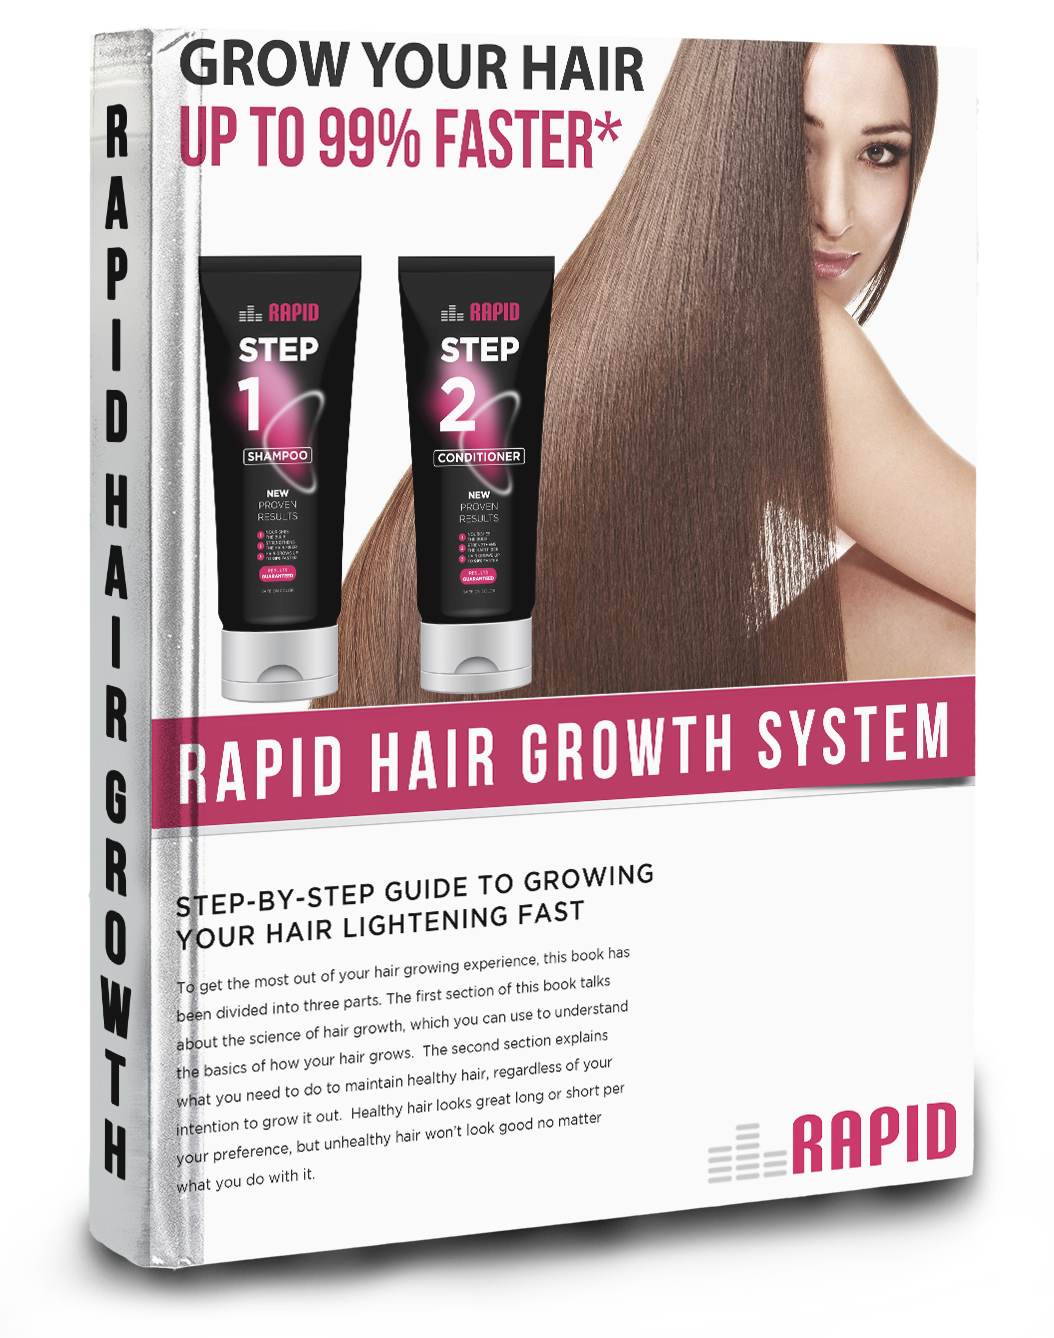 Genive Long Hair Fast Growth Helps Your To Grow Faster Shampoo Conditioner